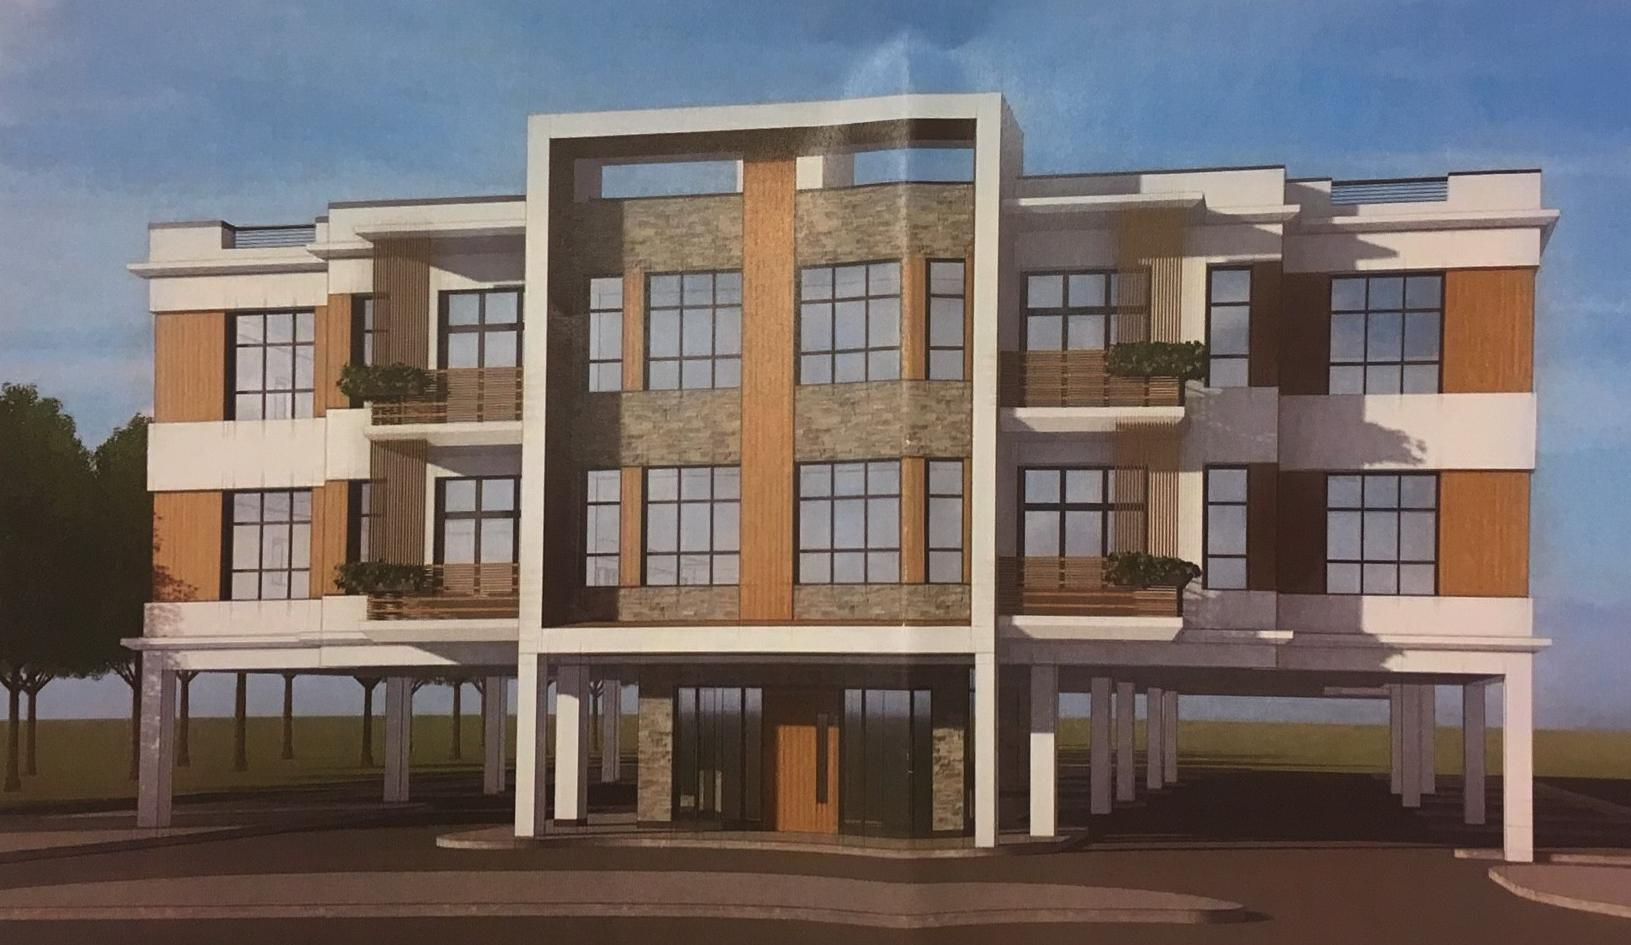 Neighbor blasts design of apartment building proposed for ...